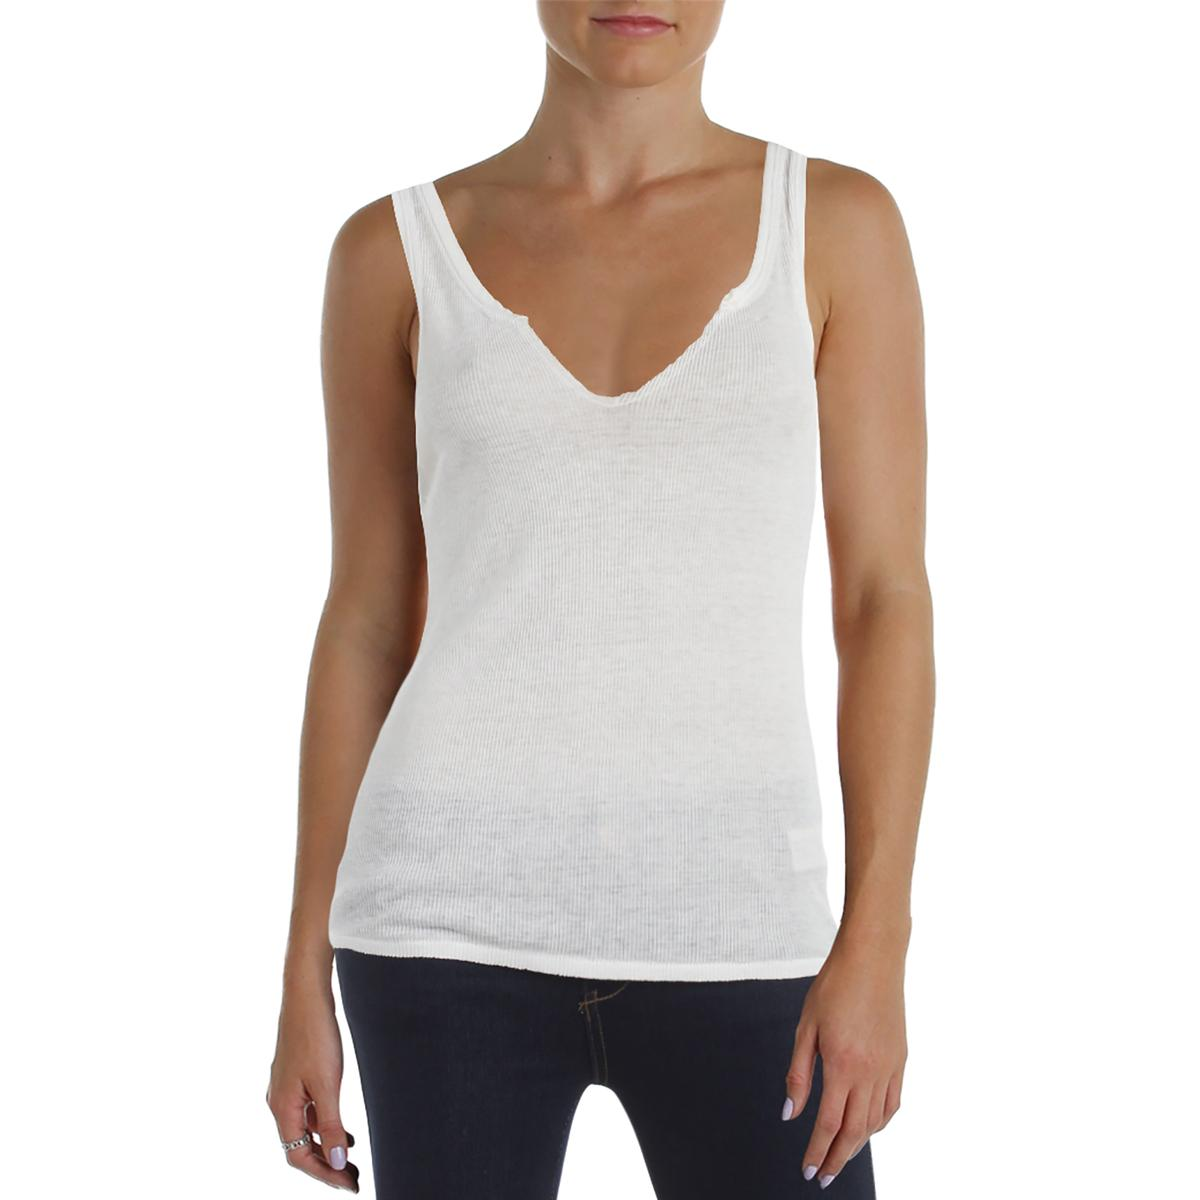 1fbc4c4f012c4 Details about Free People Womens Jersey Ribbed Sleeveless Tank Top Shirt  BHFO 9029